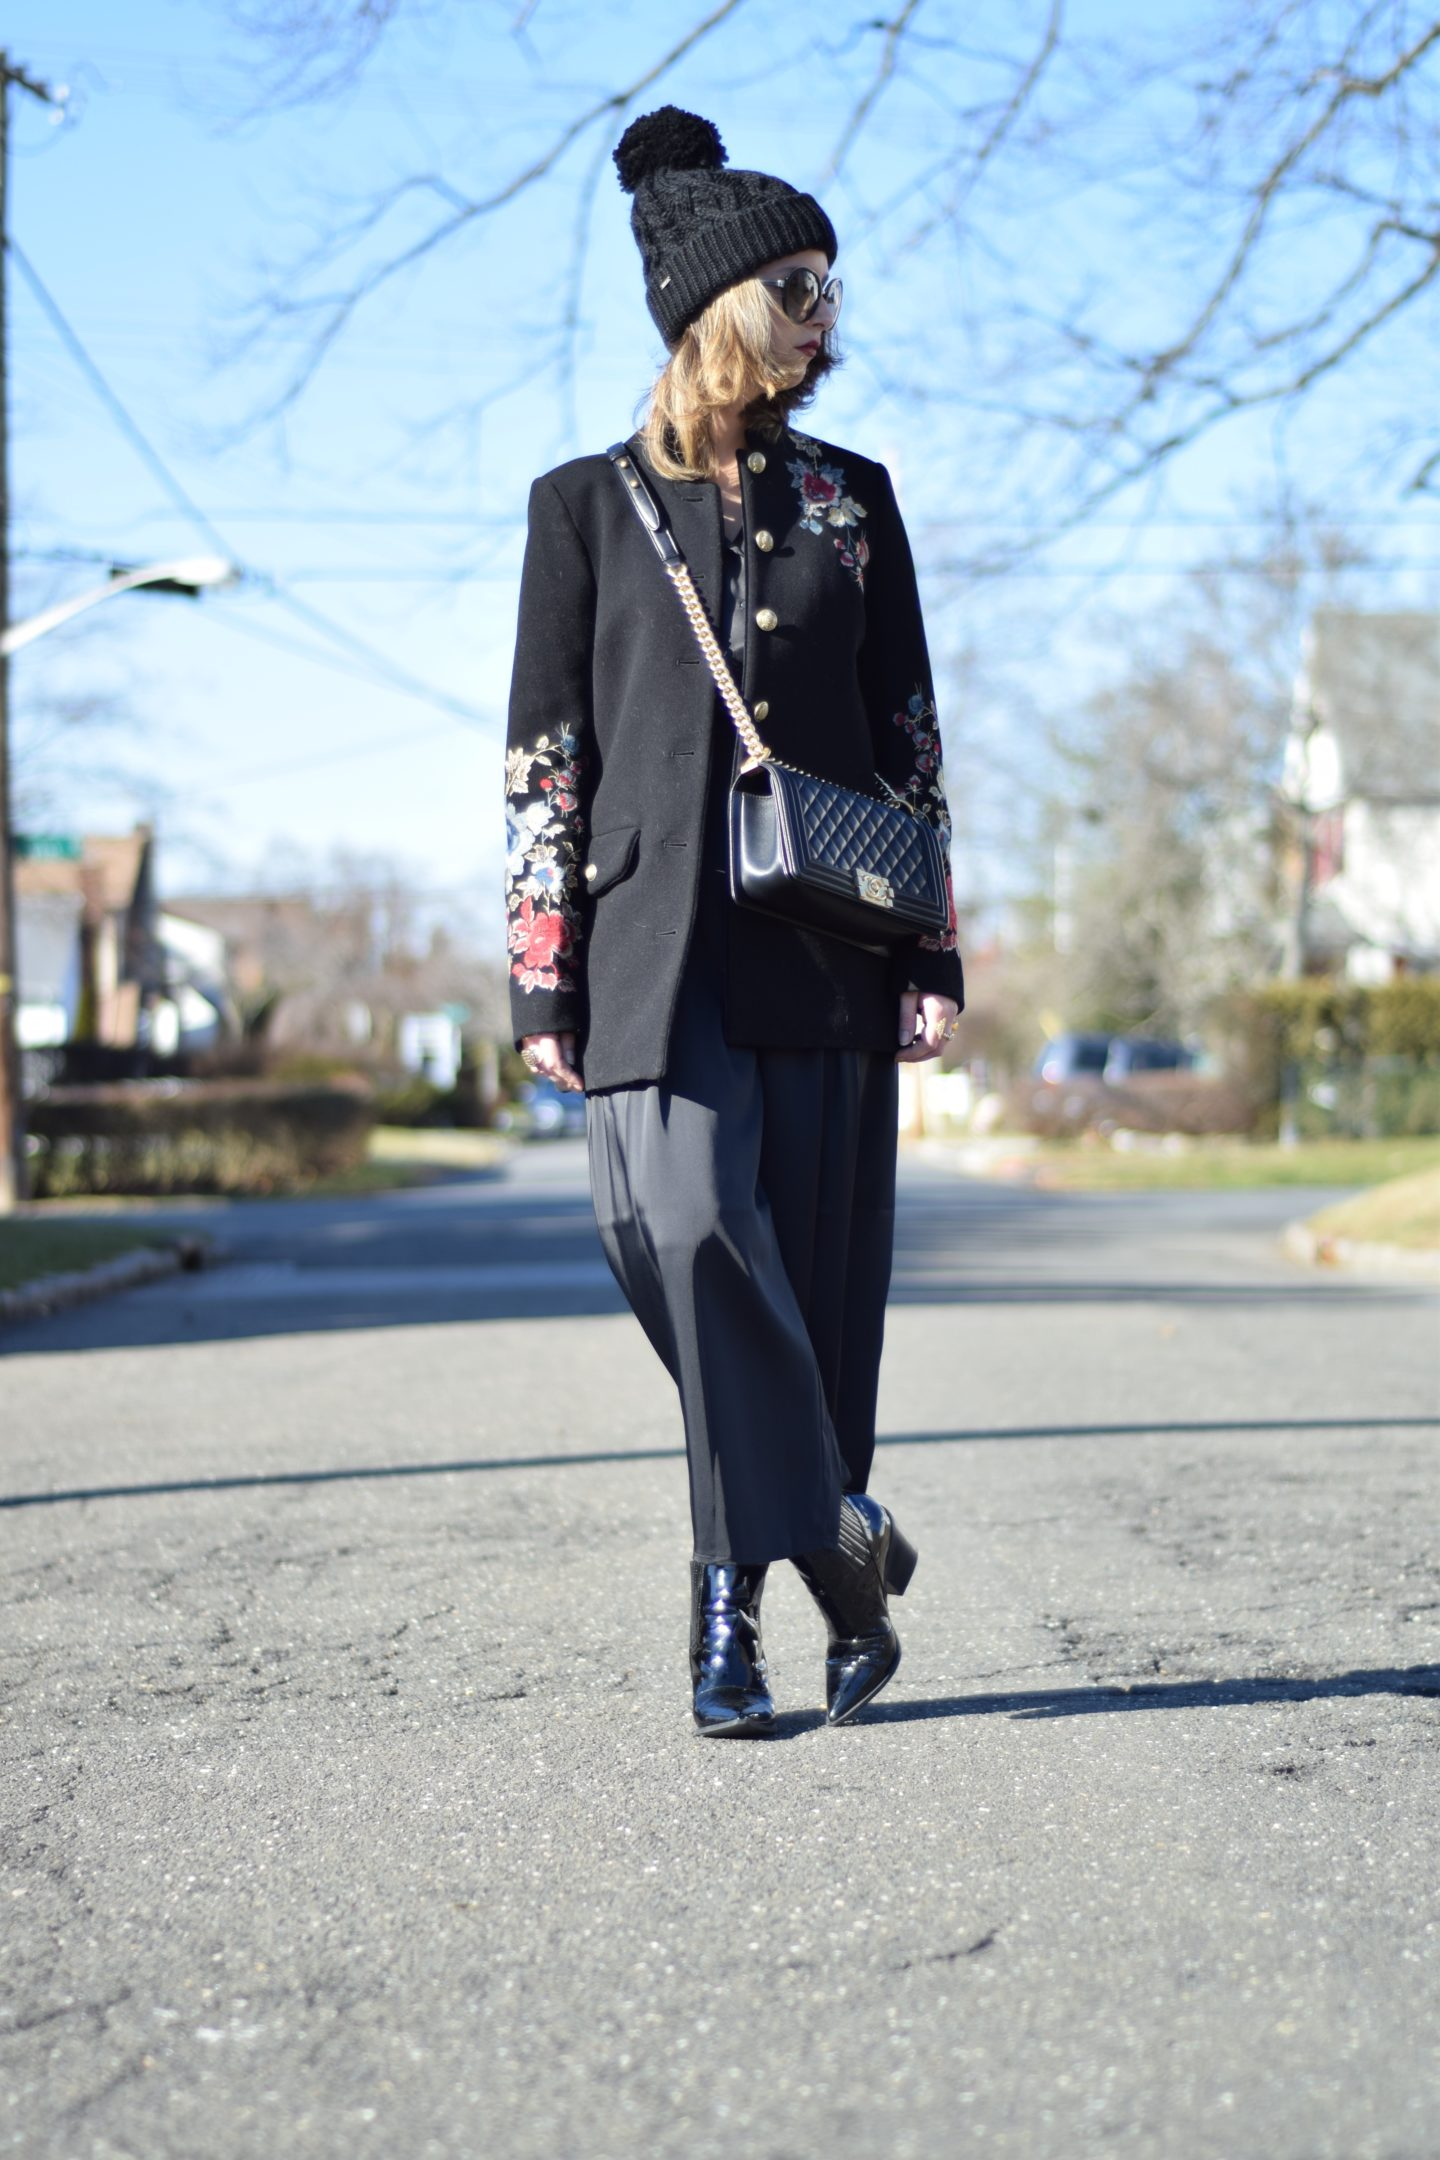 zara-floral-military-style-coat-embroidered